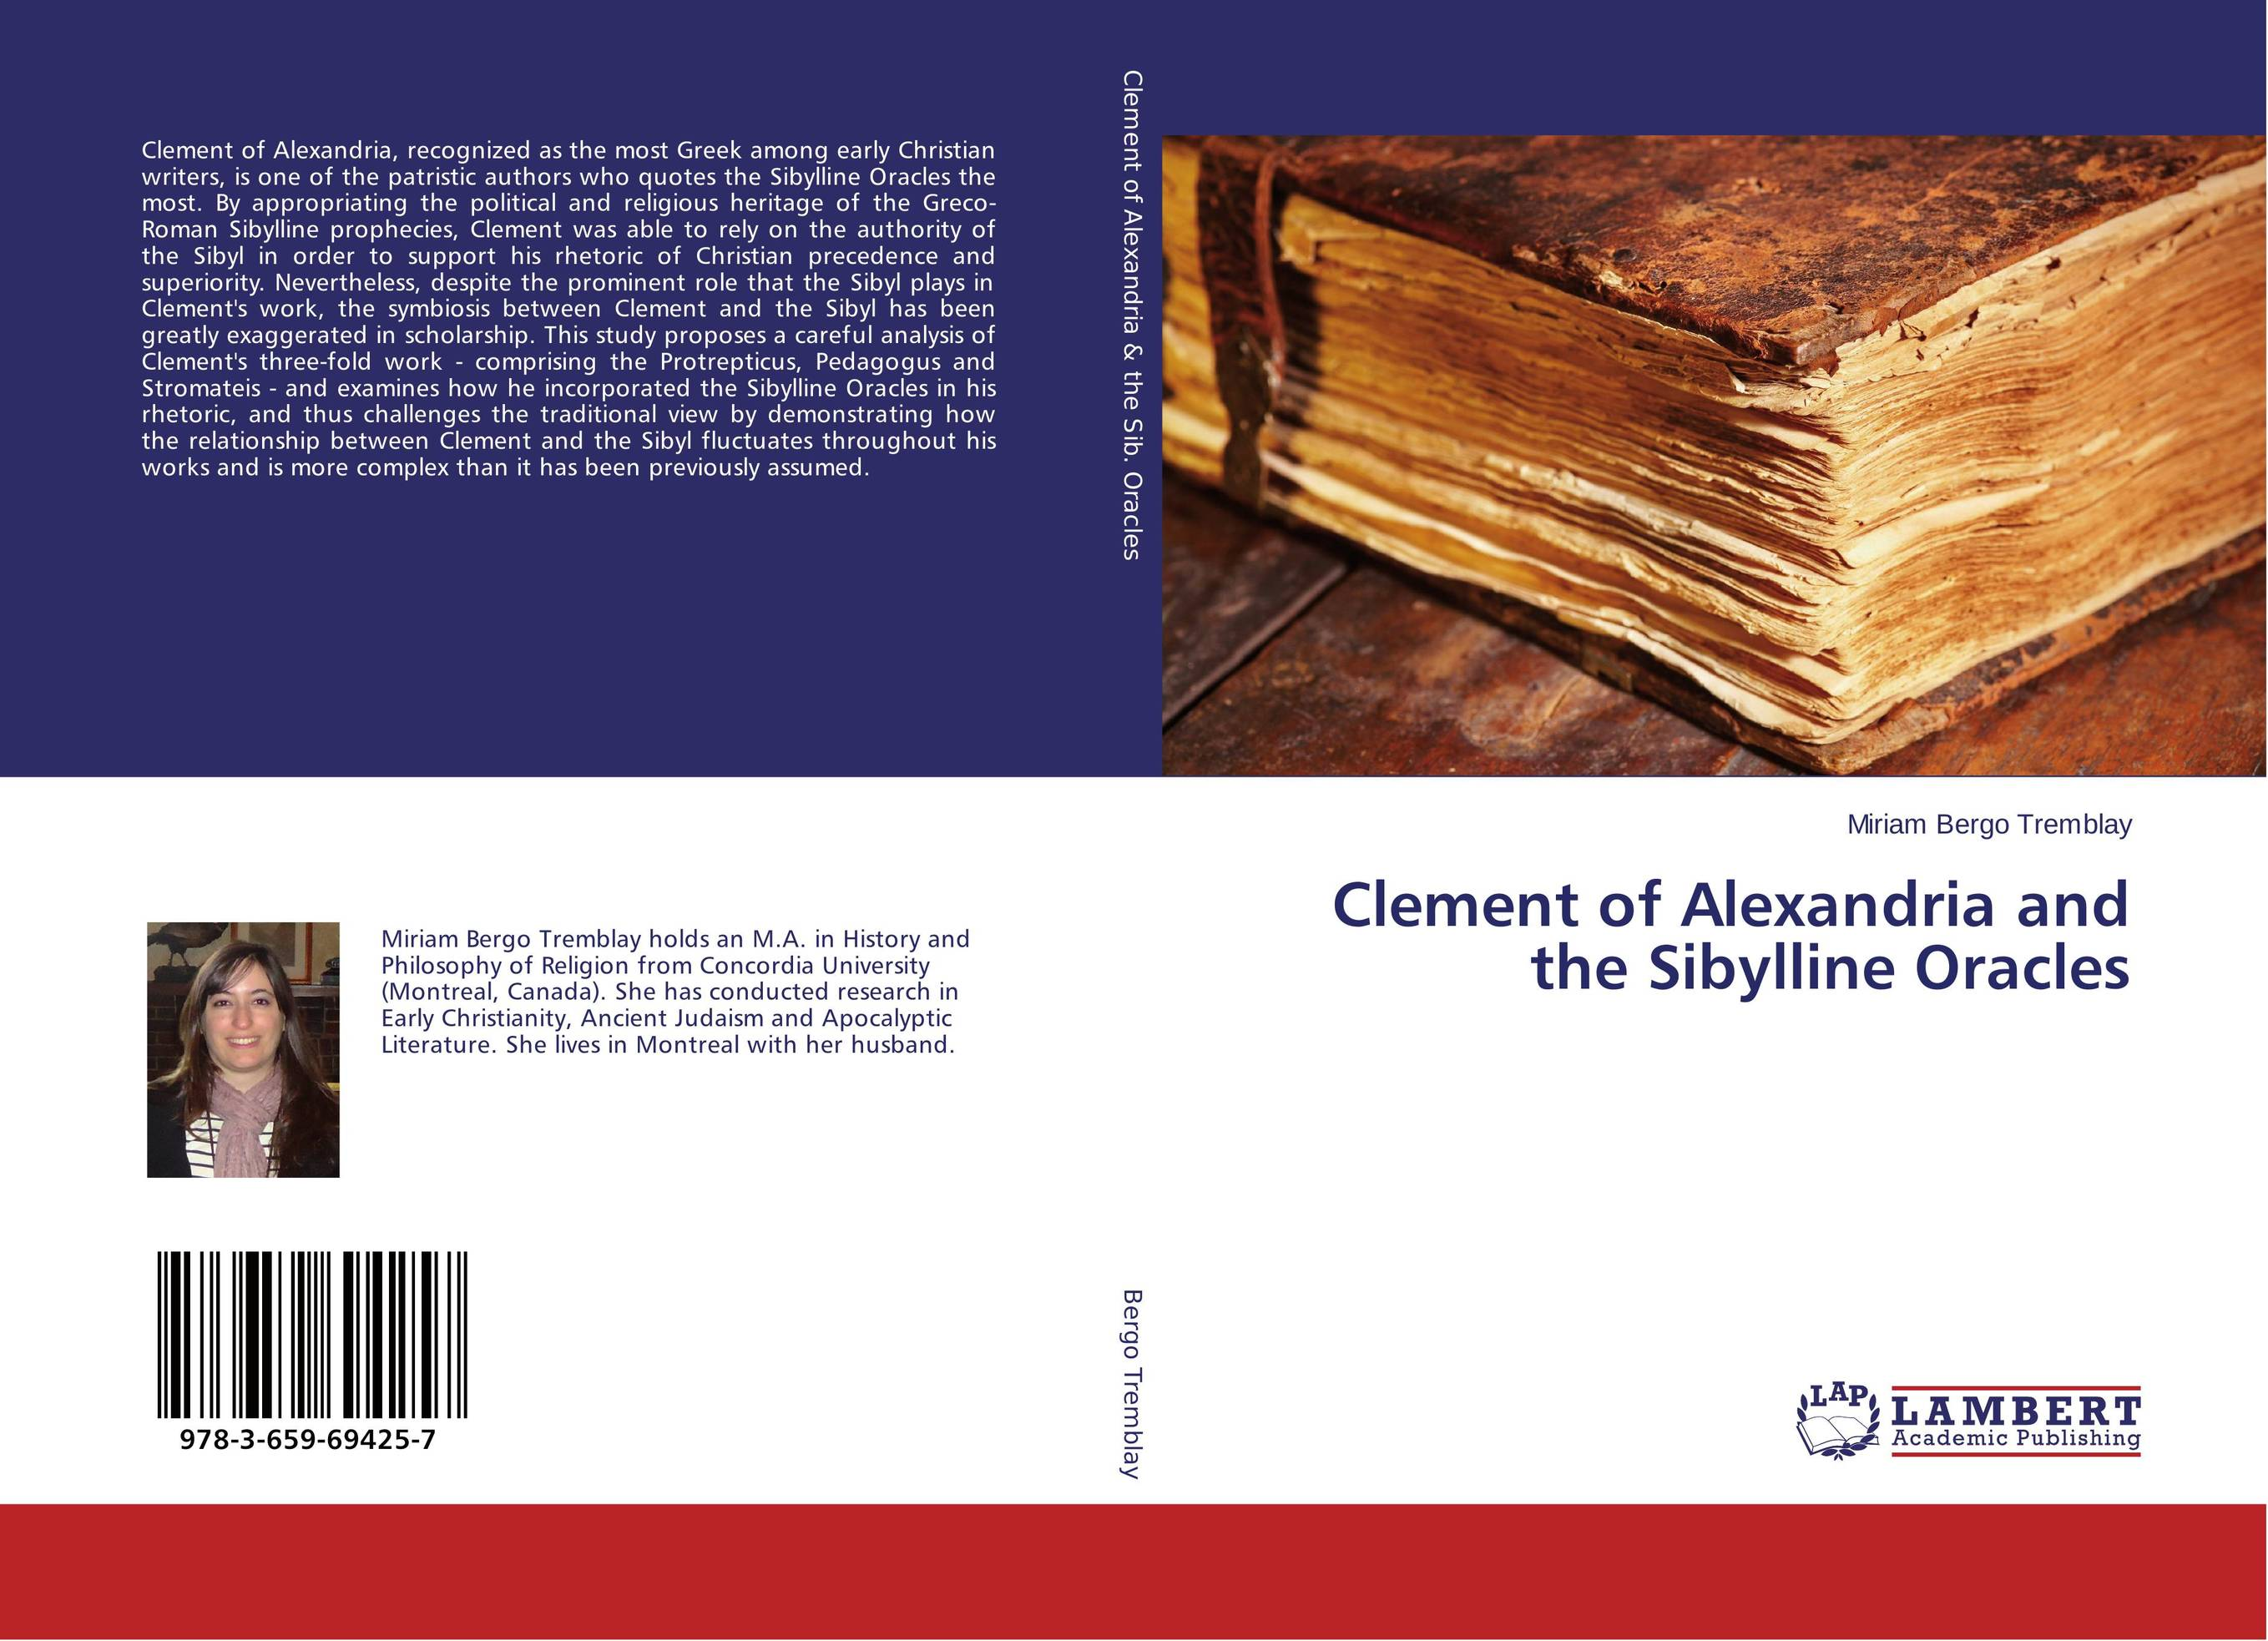 Clement of Alexandria and the Sibylline Oracles zacharys anger gundu and clement olumuyiwa bakinde papers in nigerian archaeology